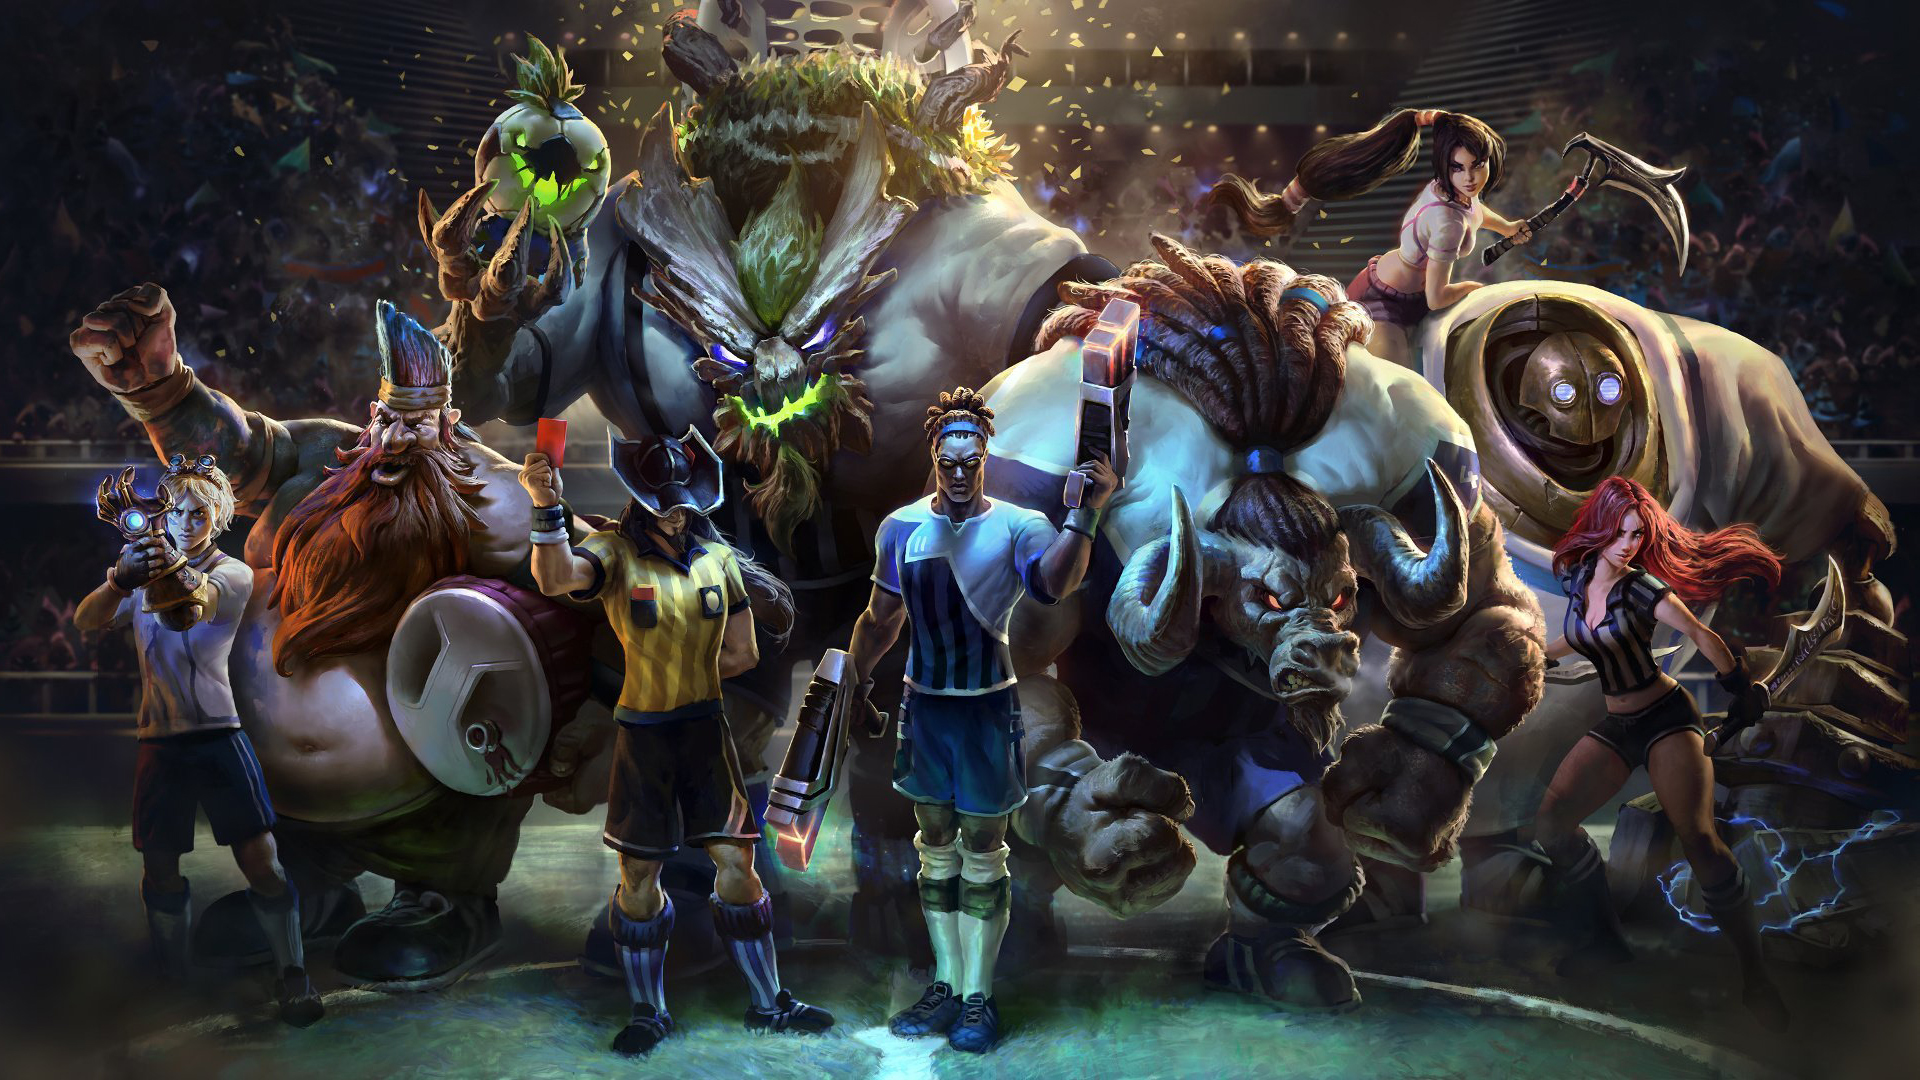 20 Alistar (League Of Legends) HD Wallpapers | Background ...